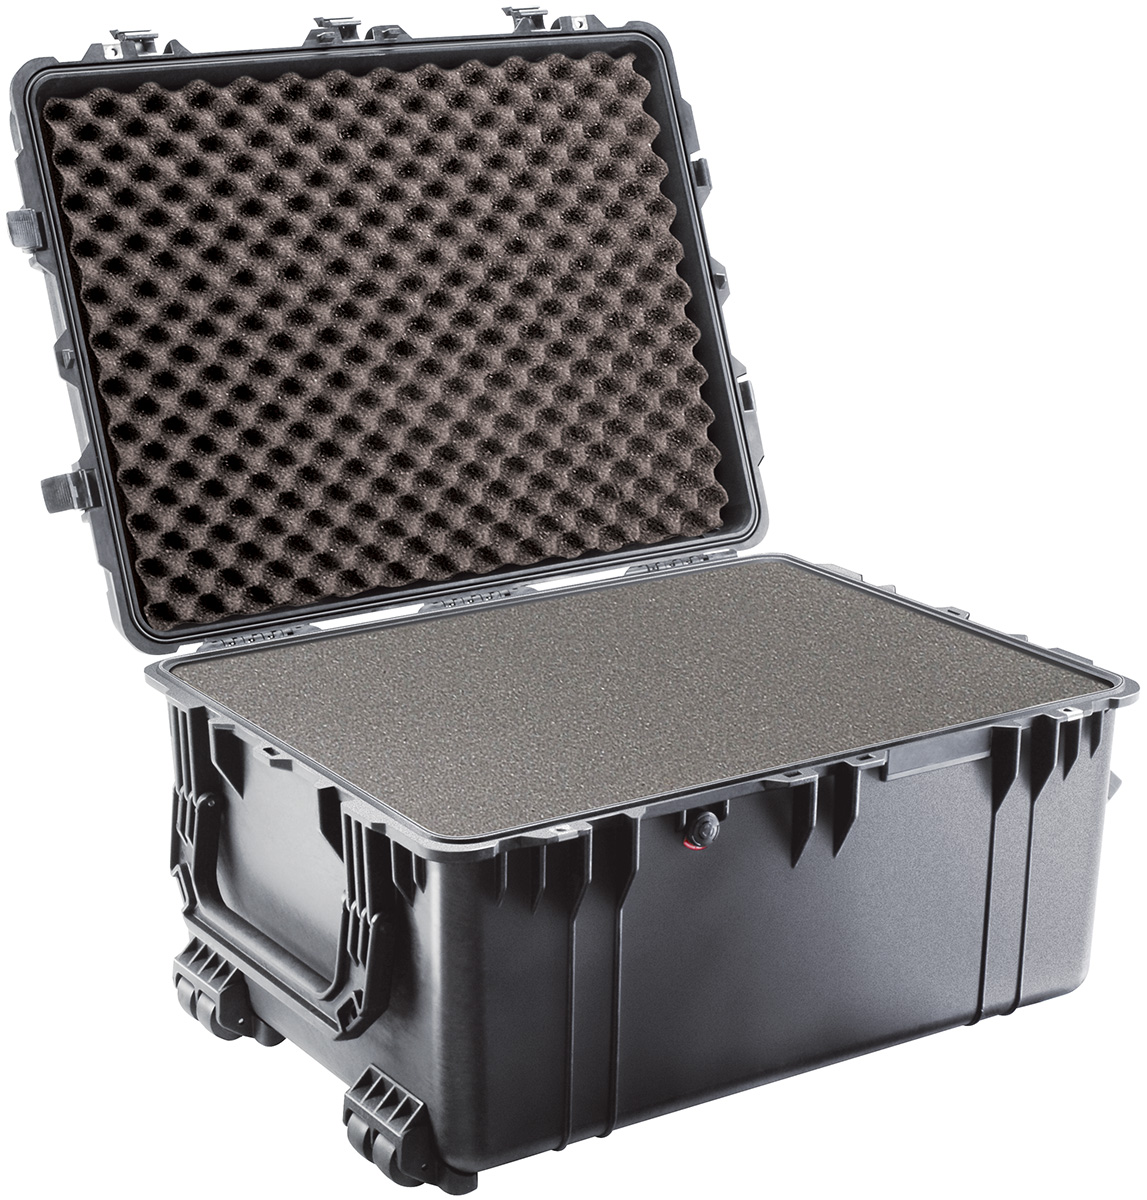 pelican peli products 1630 rolling protective hard shell case